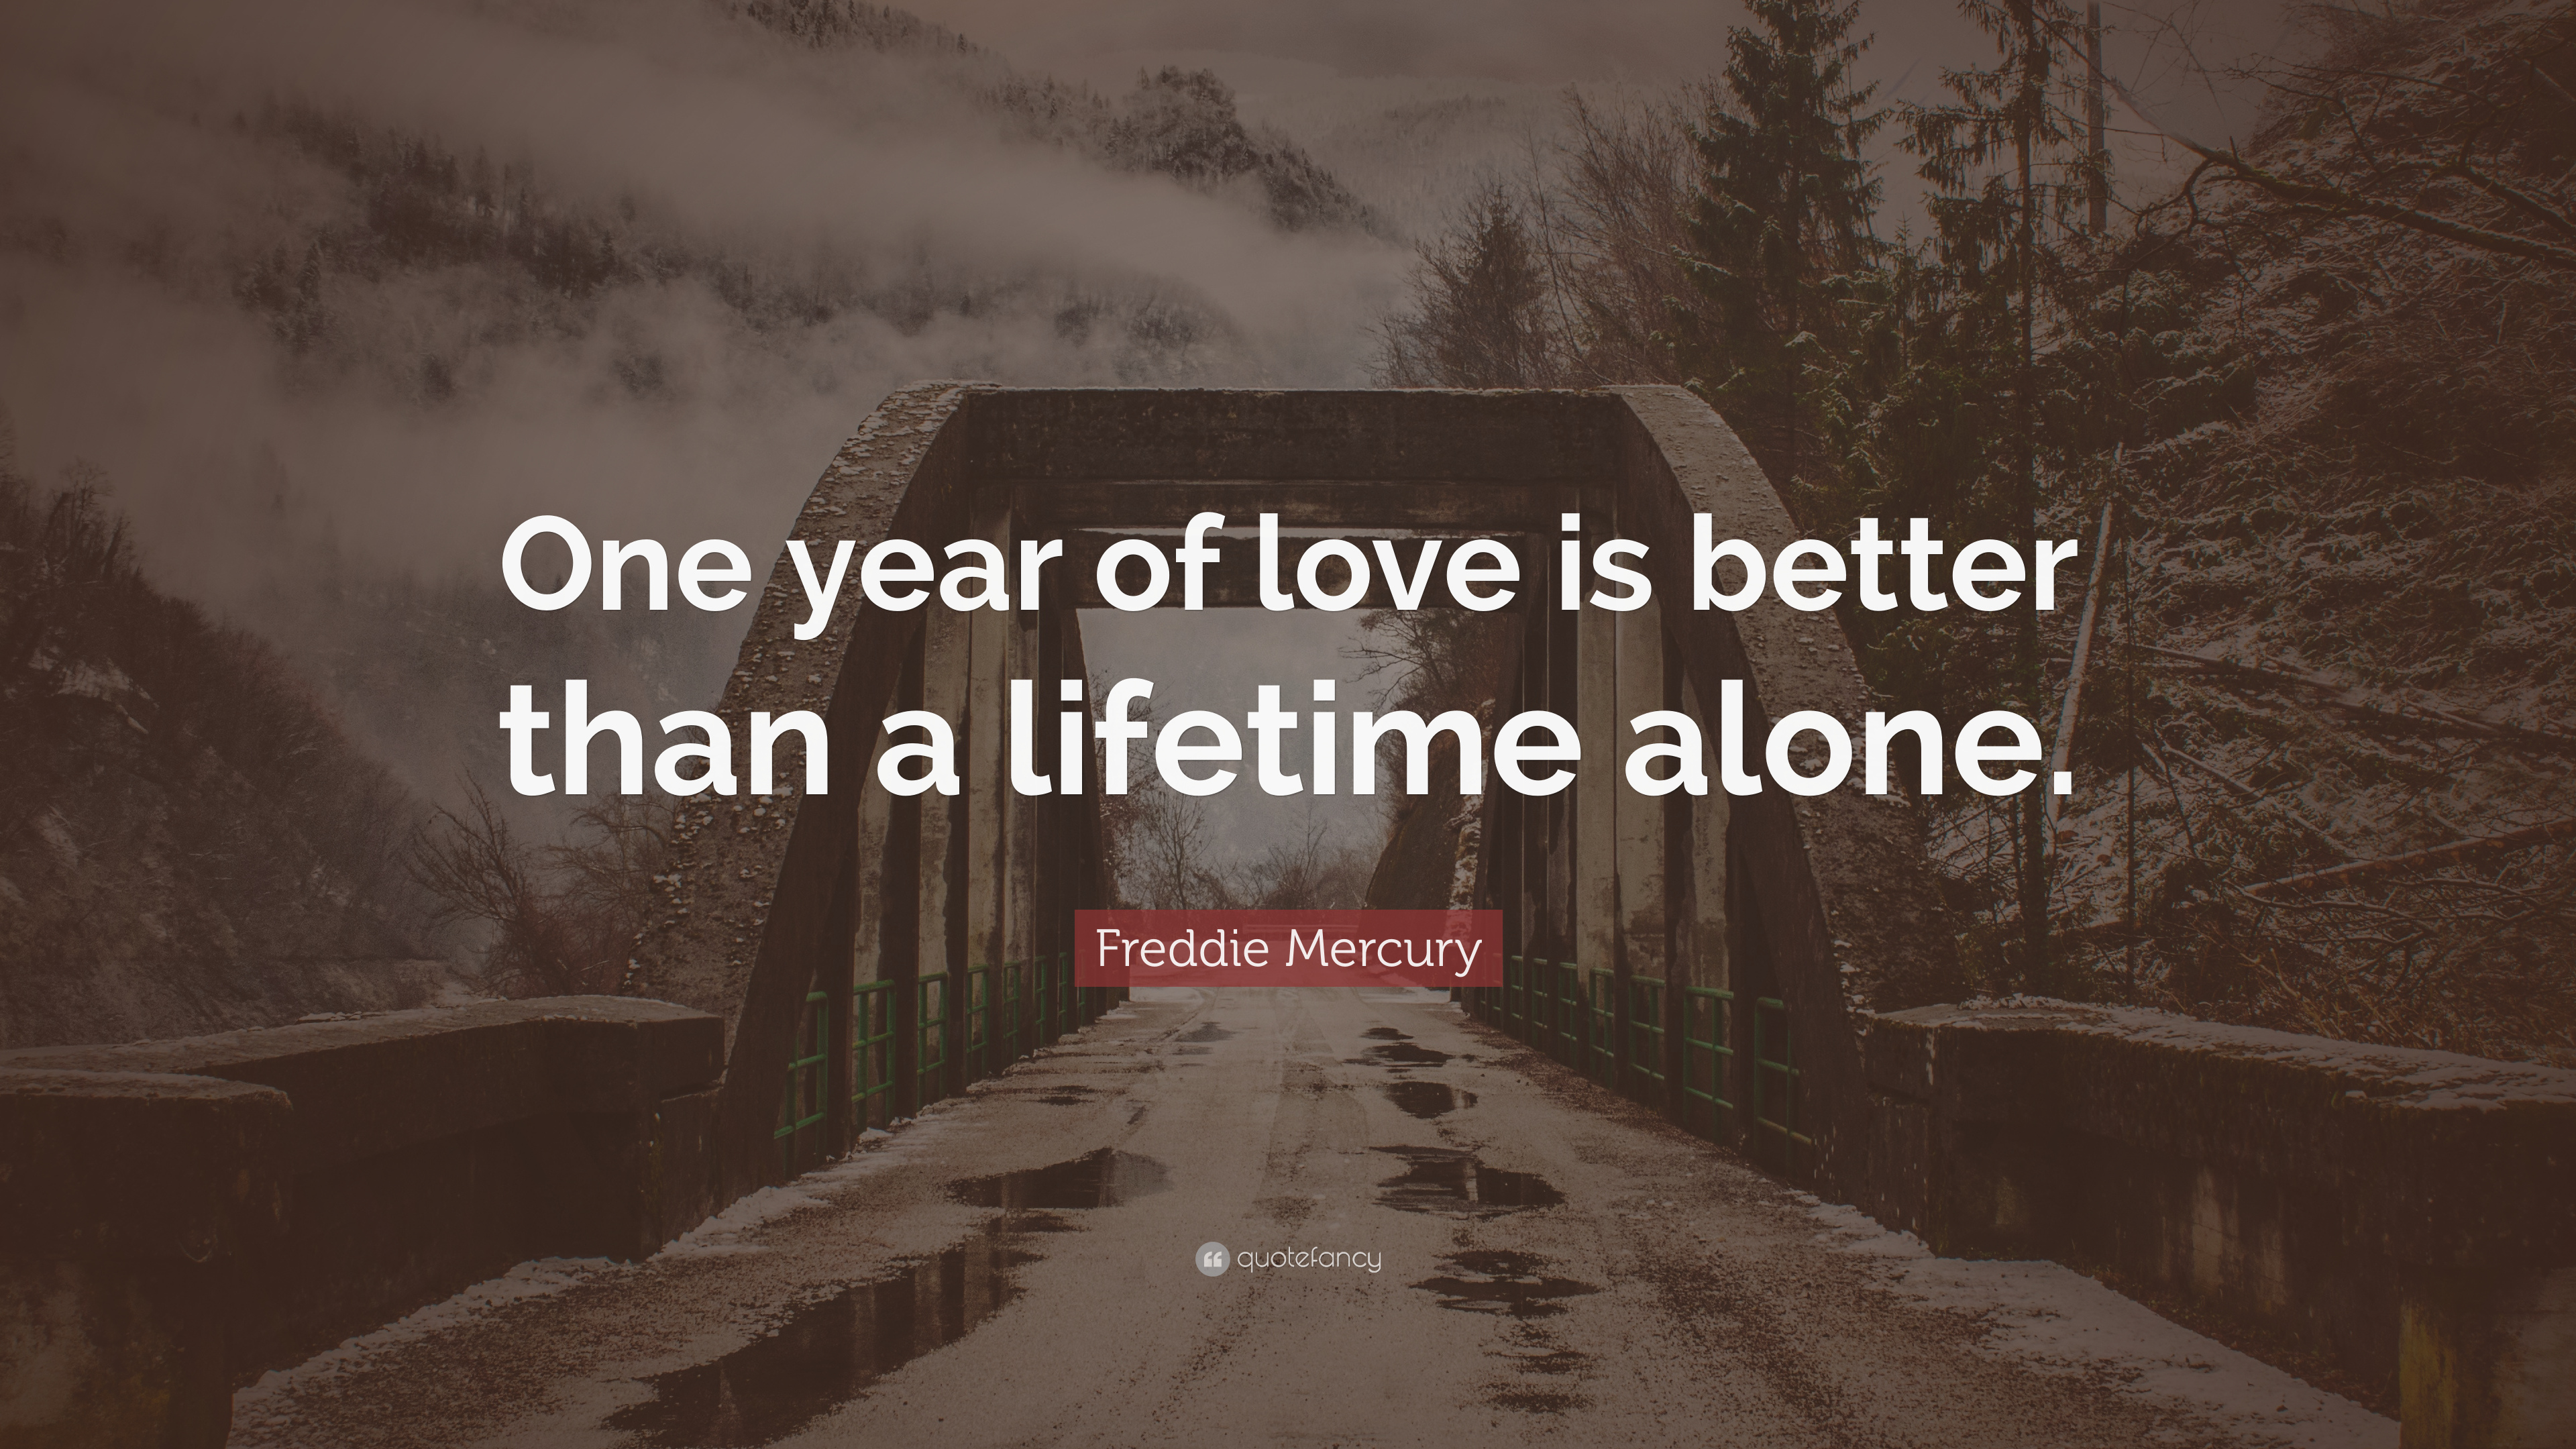 Freddie Mercury Quote: U201cOne Year Of Love Is Better Than A Lifetime Alone.